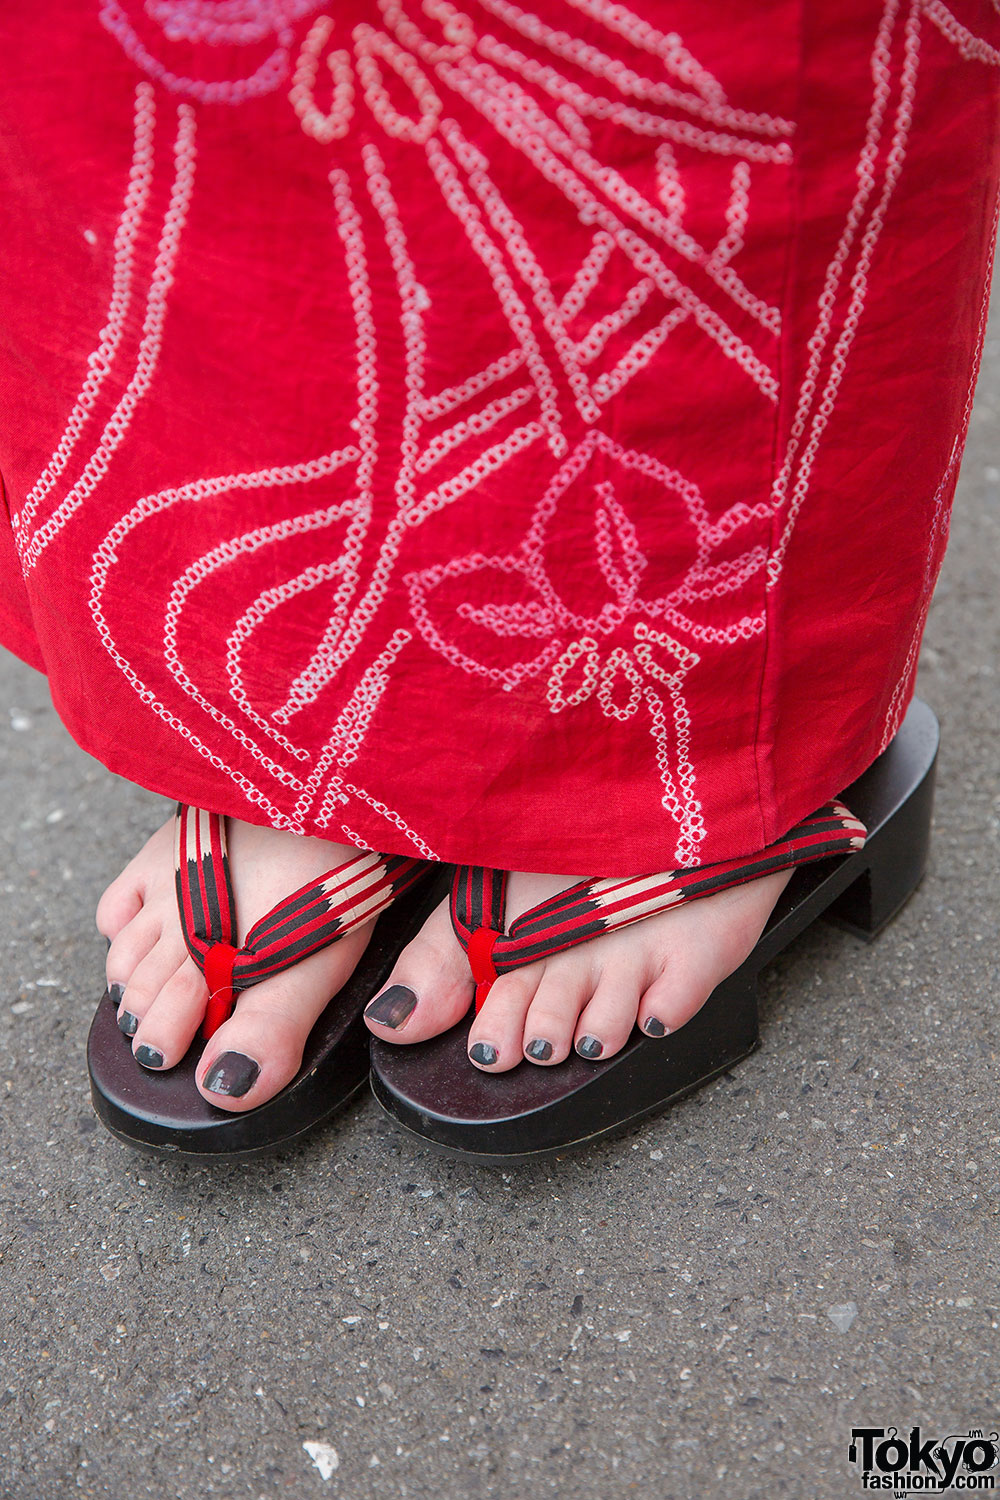 Red Yukata Amp Geta Sandals W Pill Earrings Amp Round Bag In